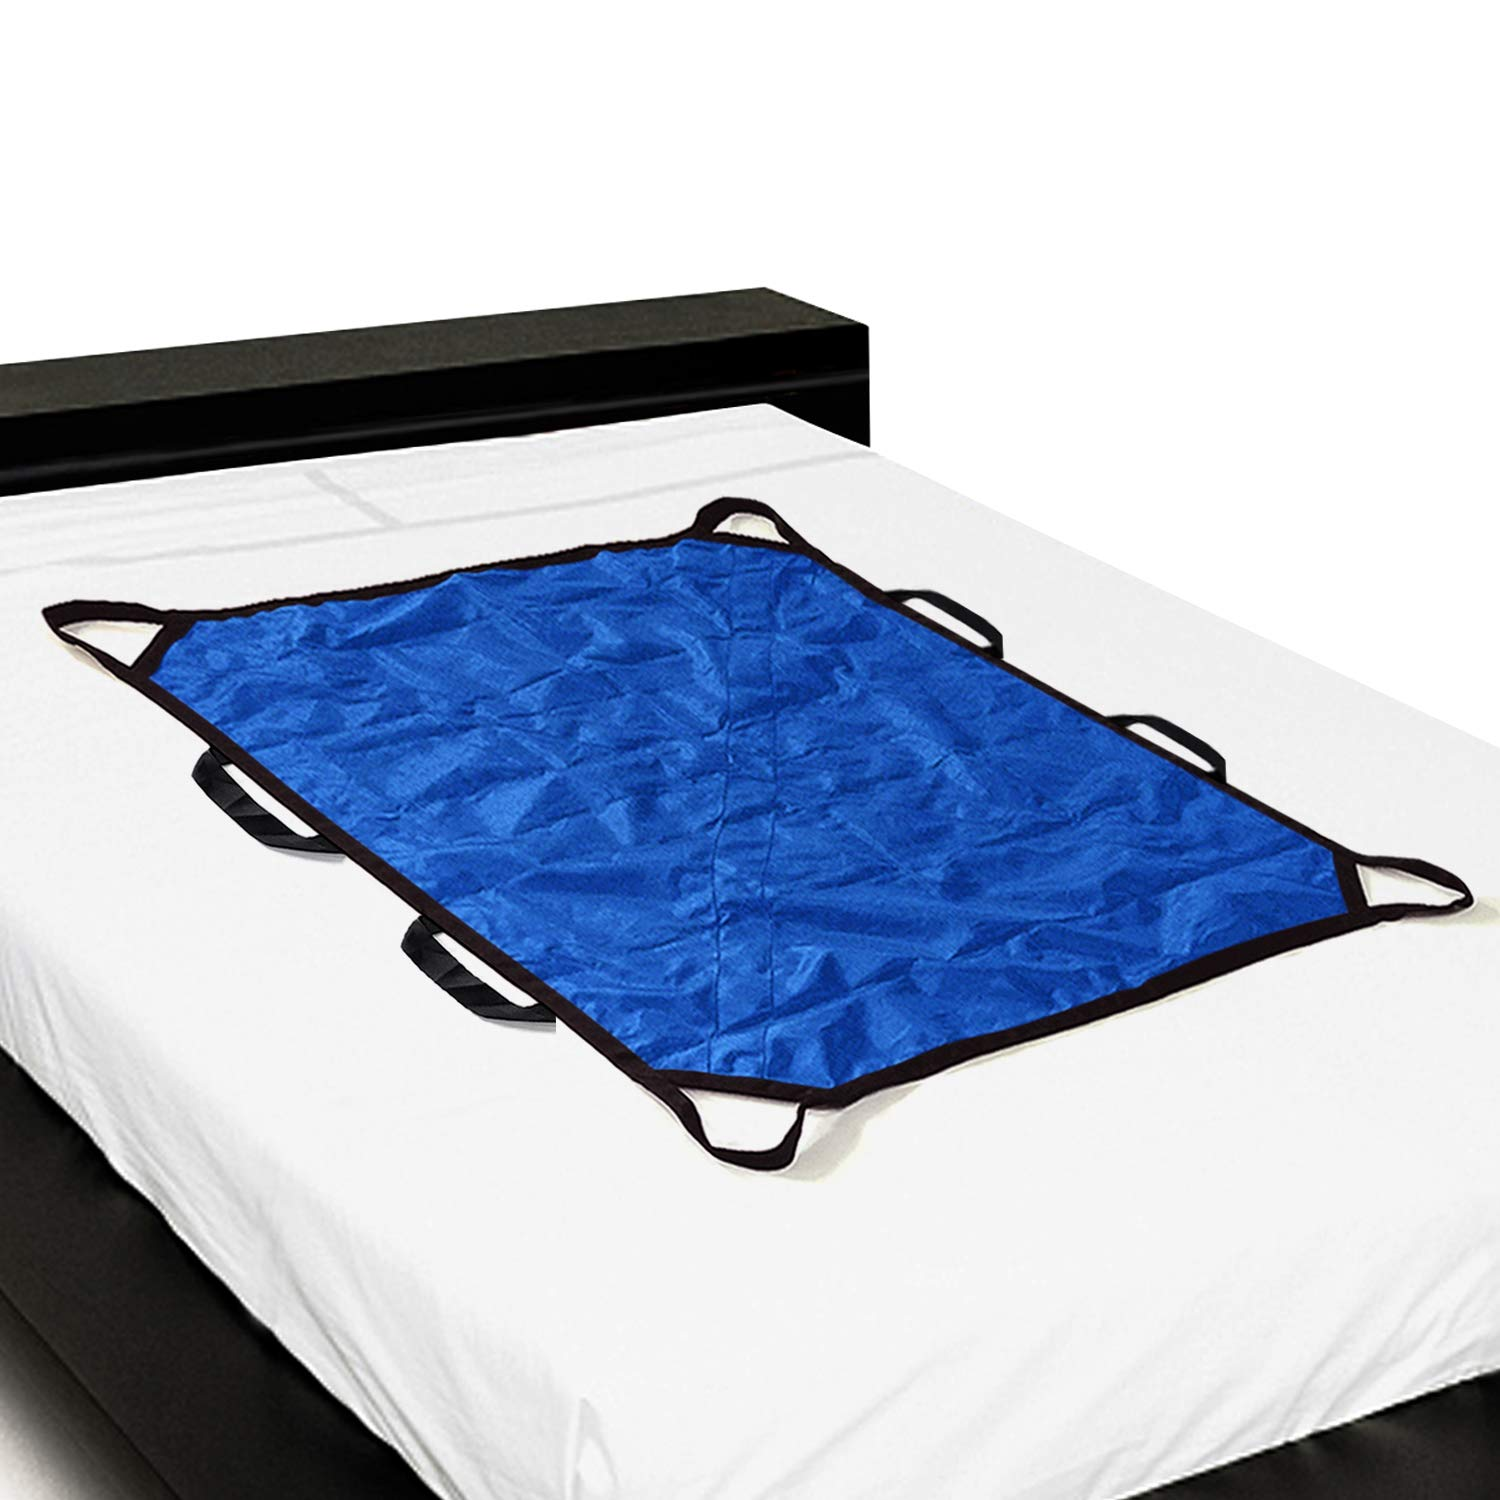 Multipurpose 43'' x 36'' Positioning Bed Pad with Reinforced Handles by ZHEEYI - Reusable & Washable Patient Sheet for Turning, Lifting & Repositioning - Double-Sided Nylon Fabric, Blue